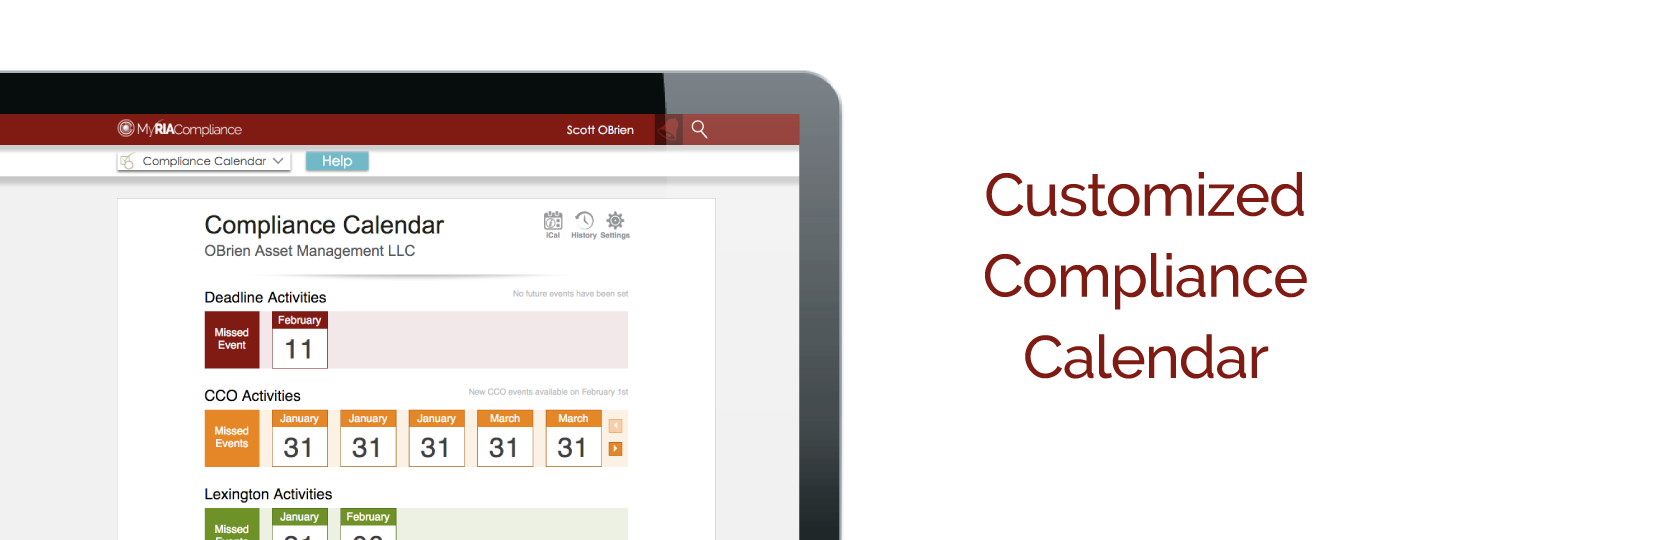 Online RIA compliance software with compliance calendar